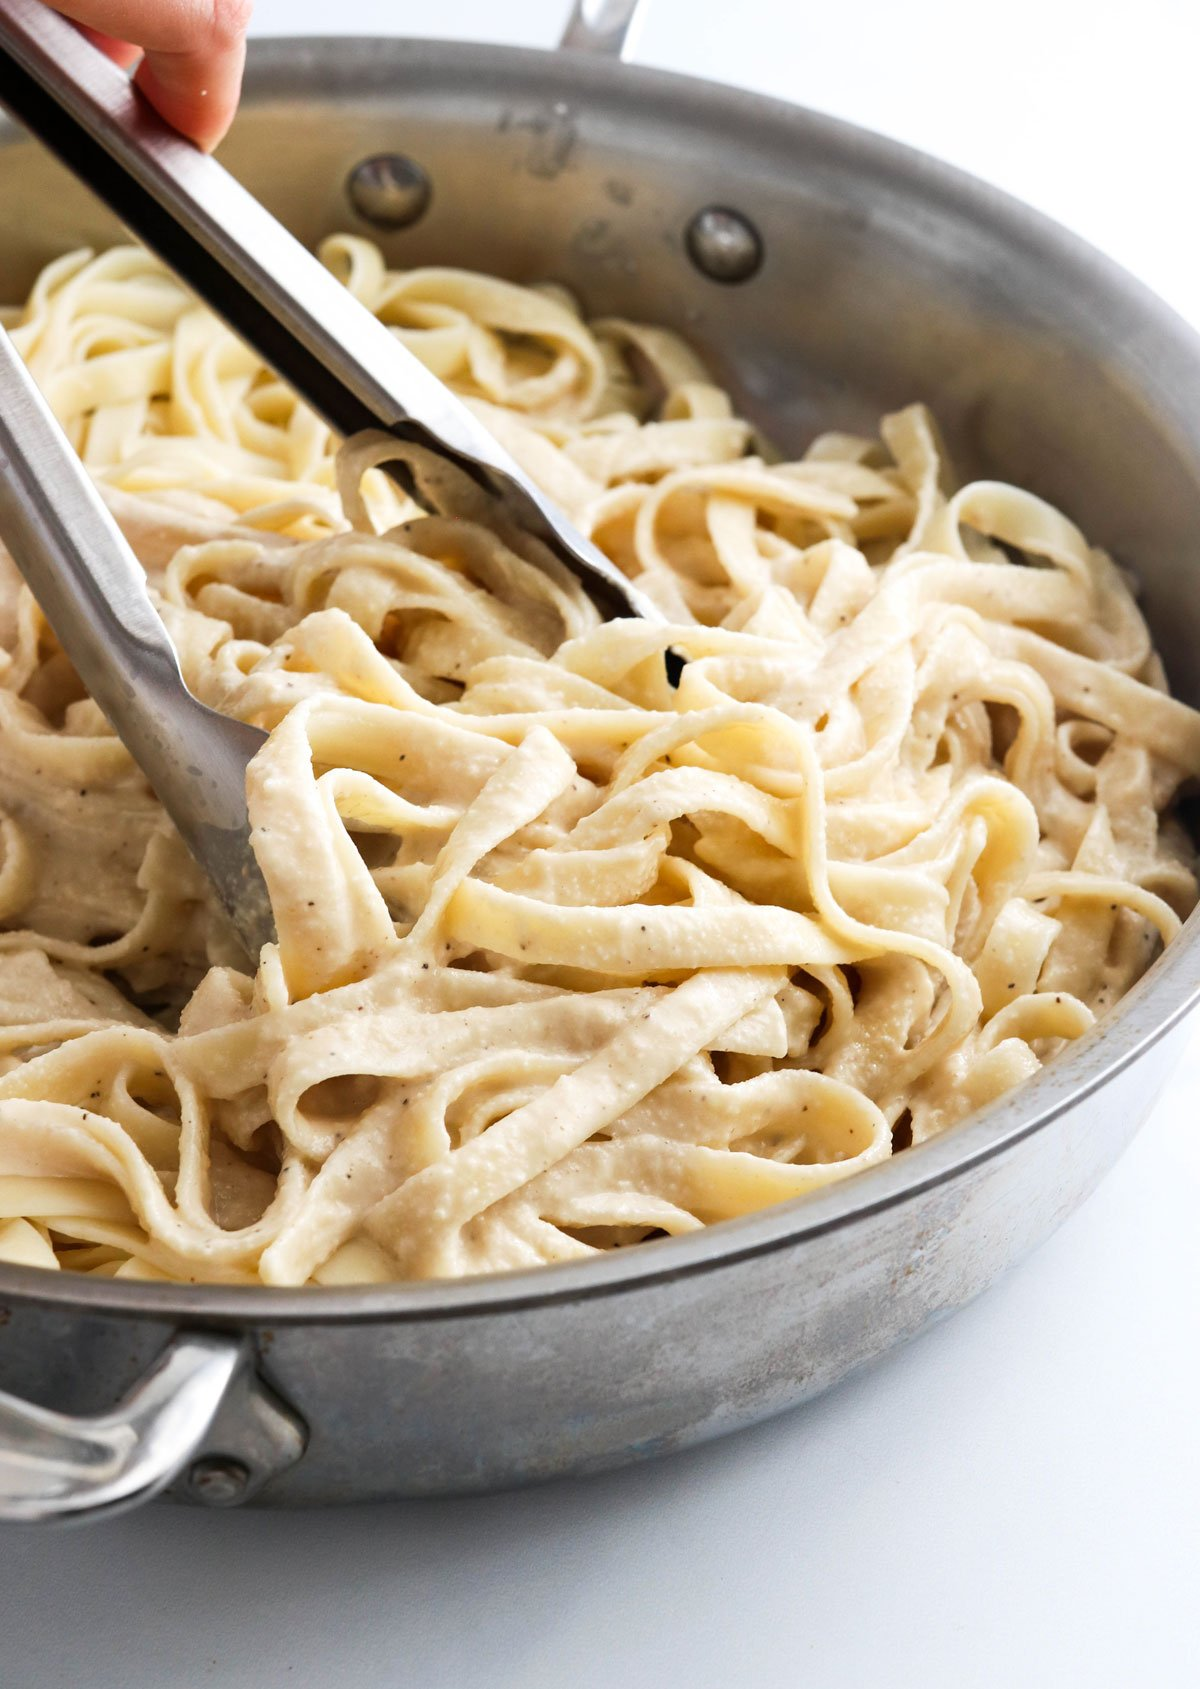 alfredo sauce tossed with pasta in pan